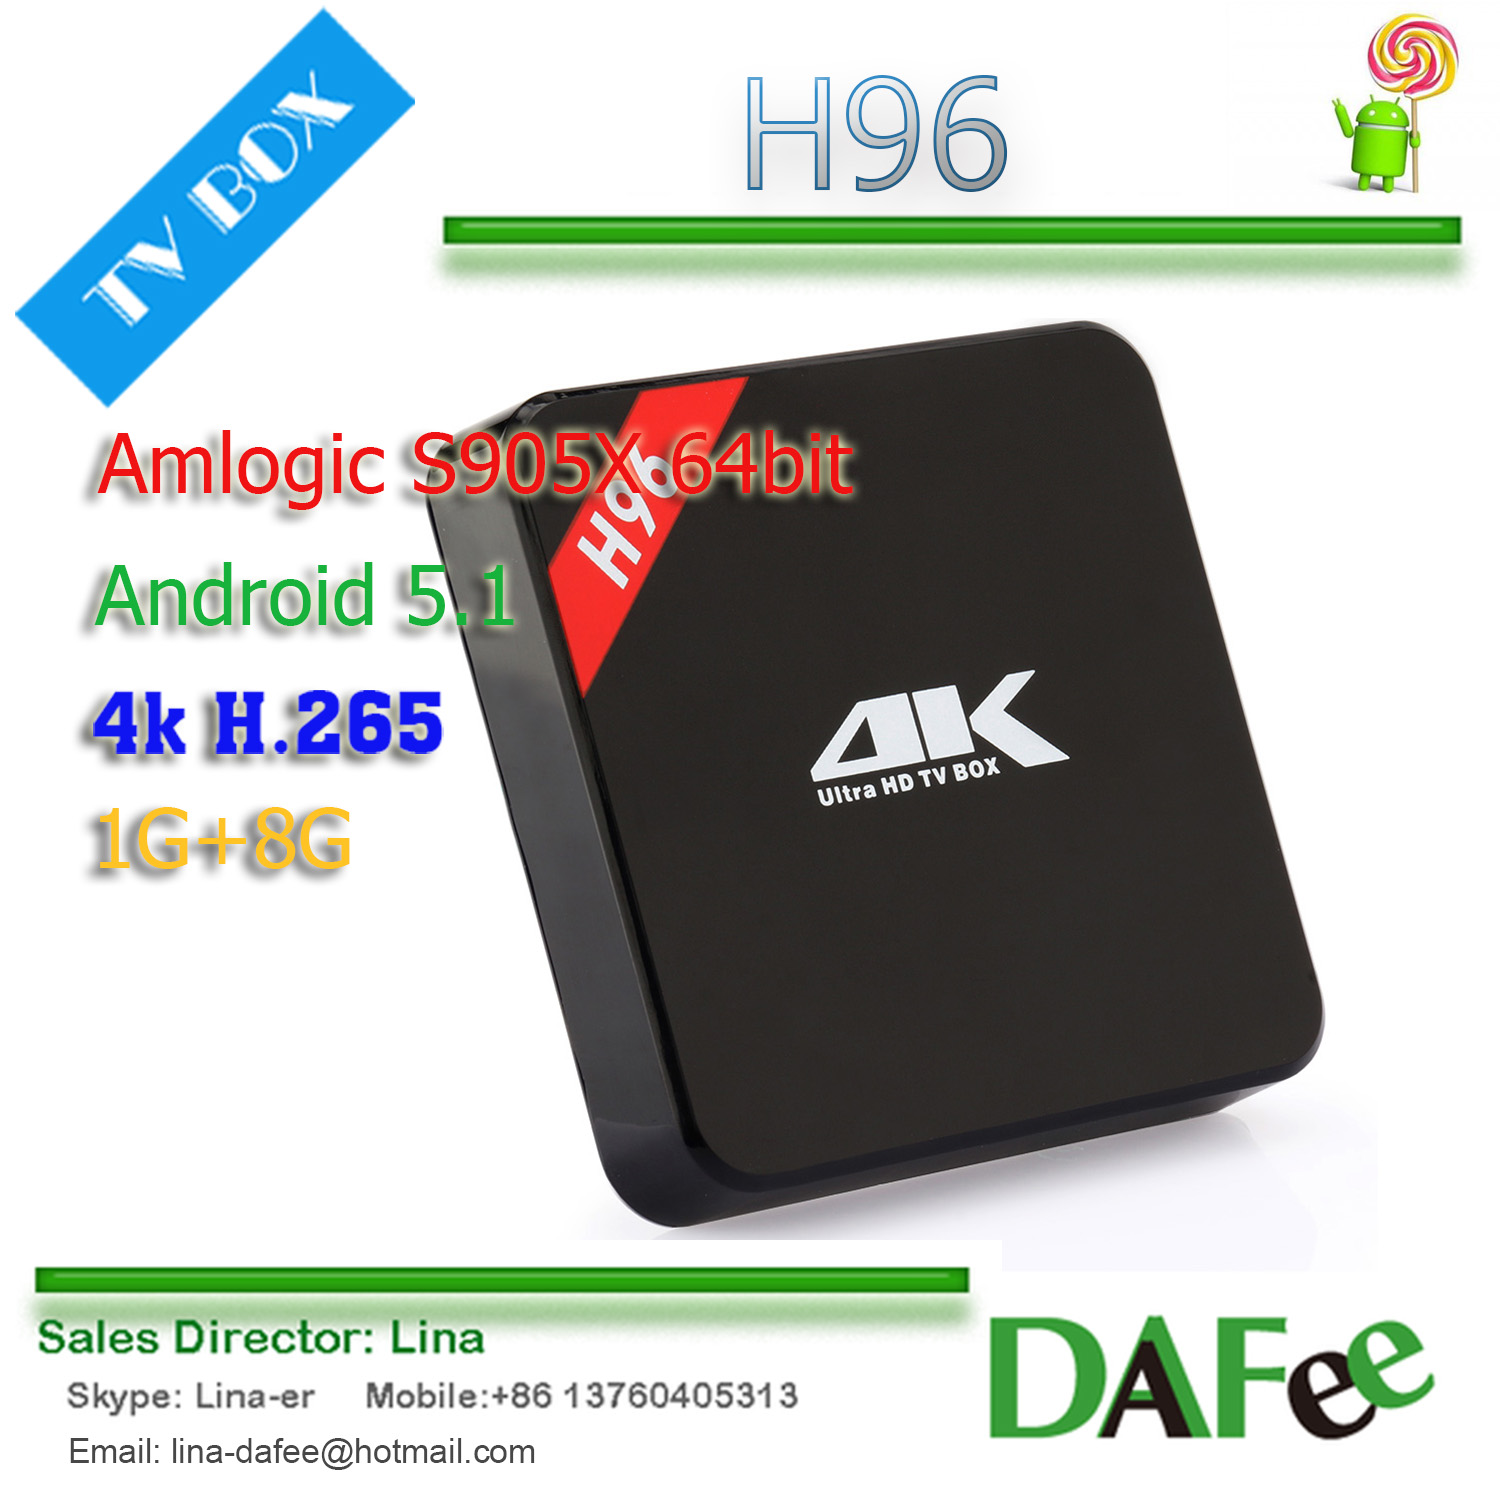 US $258 0 |4K Android TV Box Best Quality Japanese Live TV iSakura Apk IPTV  HD Image 7 days Review Basic Pack Watch 40 Channels Free Trial-in Set-top